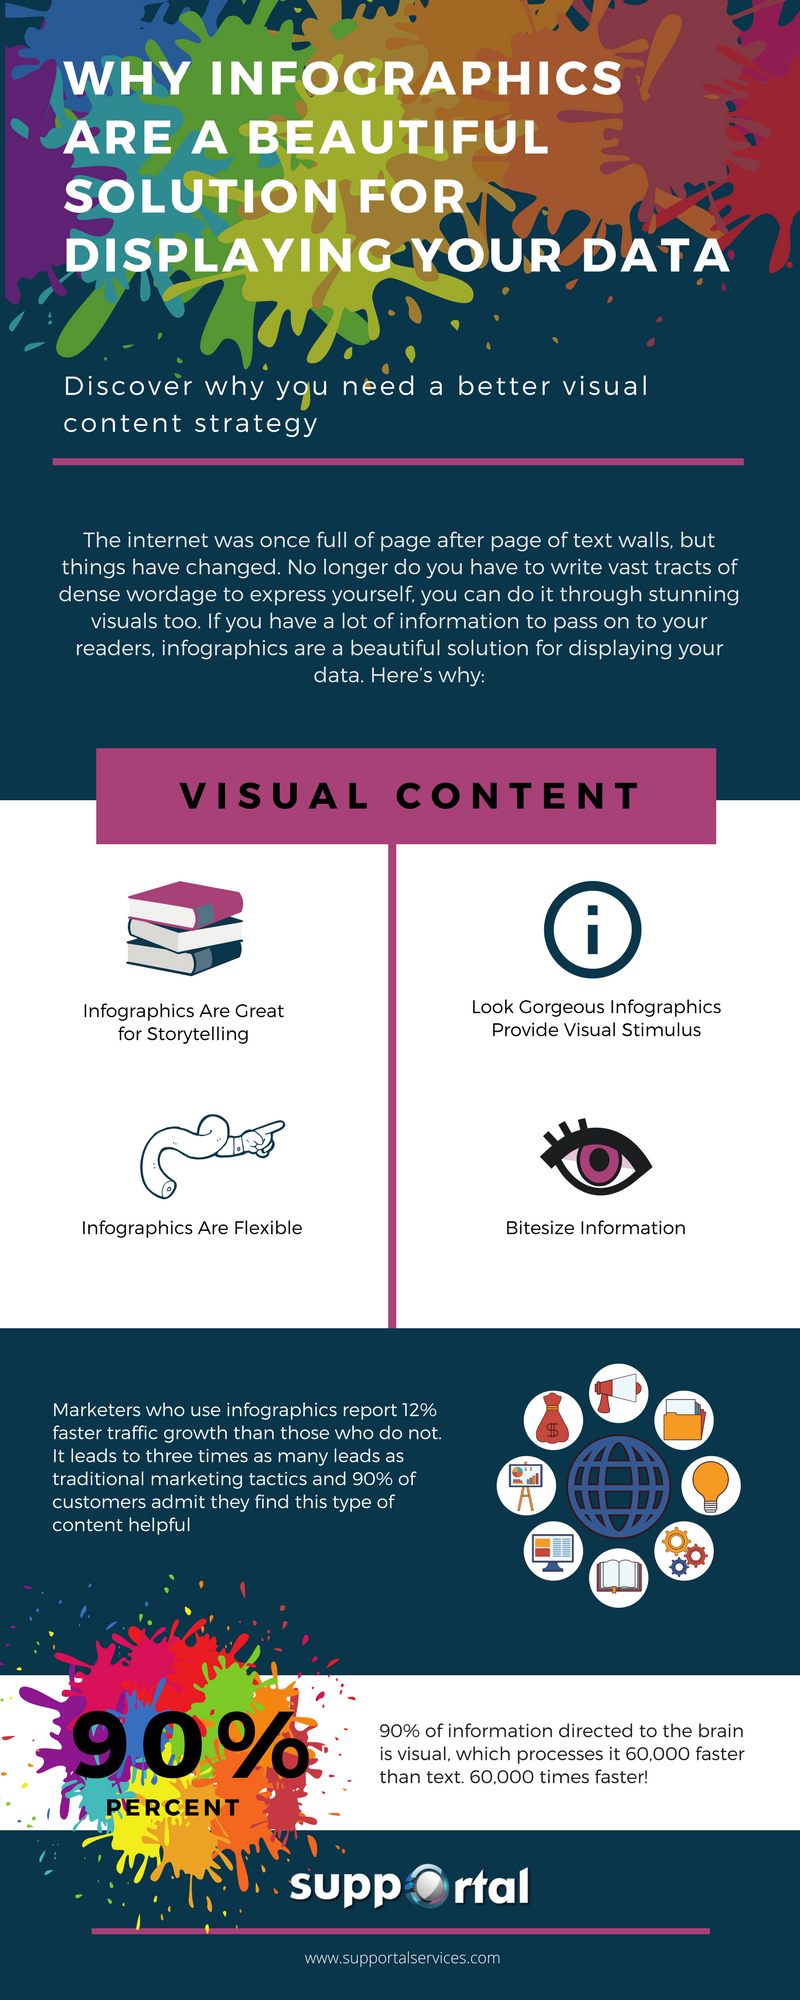 Why Infographics Are a Beautiful Solution for Displaying Your Data Supportal